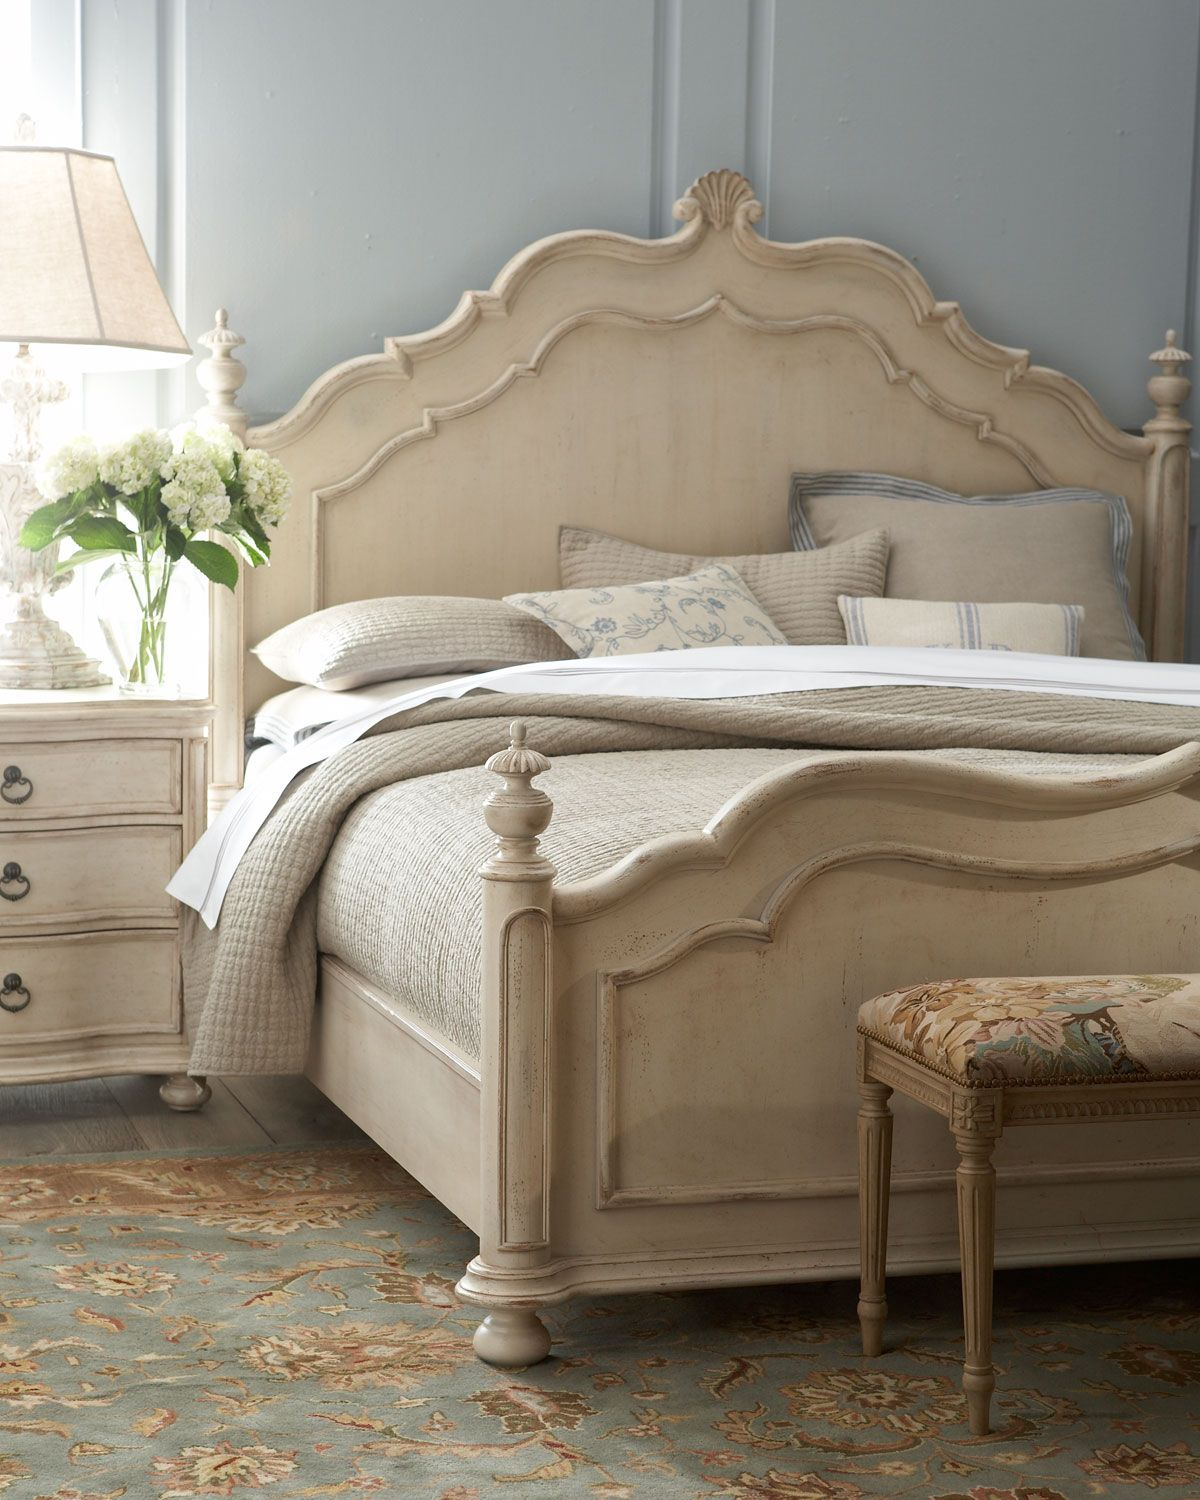 Bedroom Furniture French Shabby Country Rustic